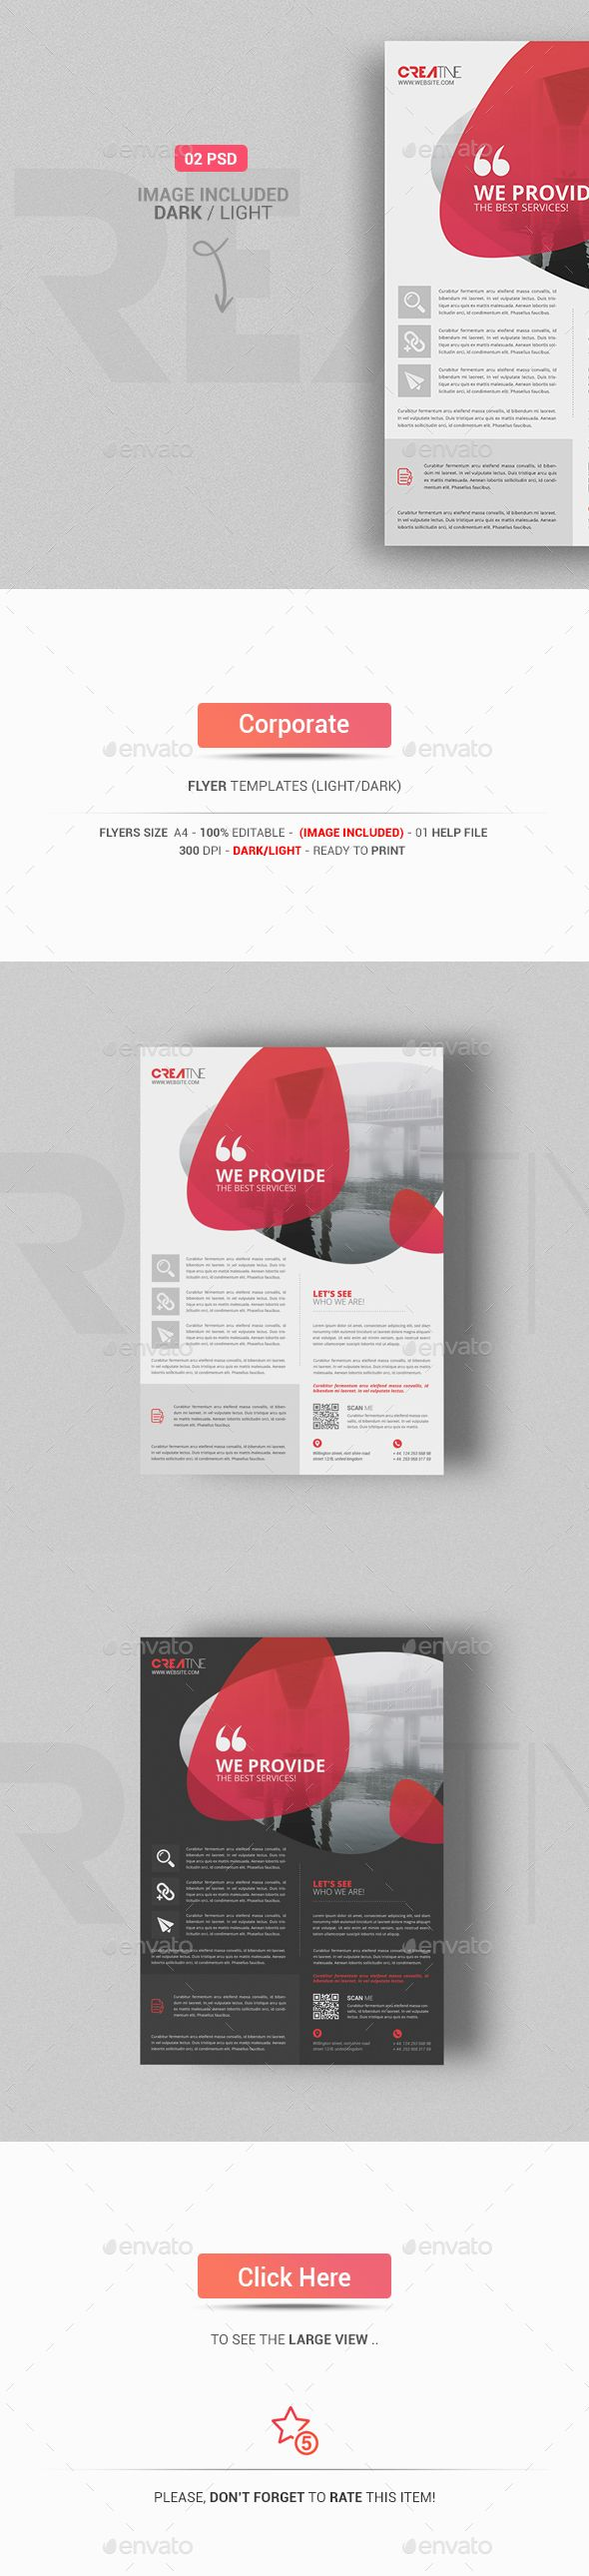 Corporate Flyer Template PSD #design Downloadu2026